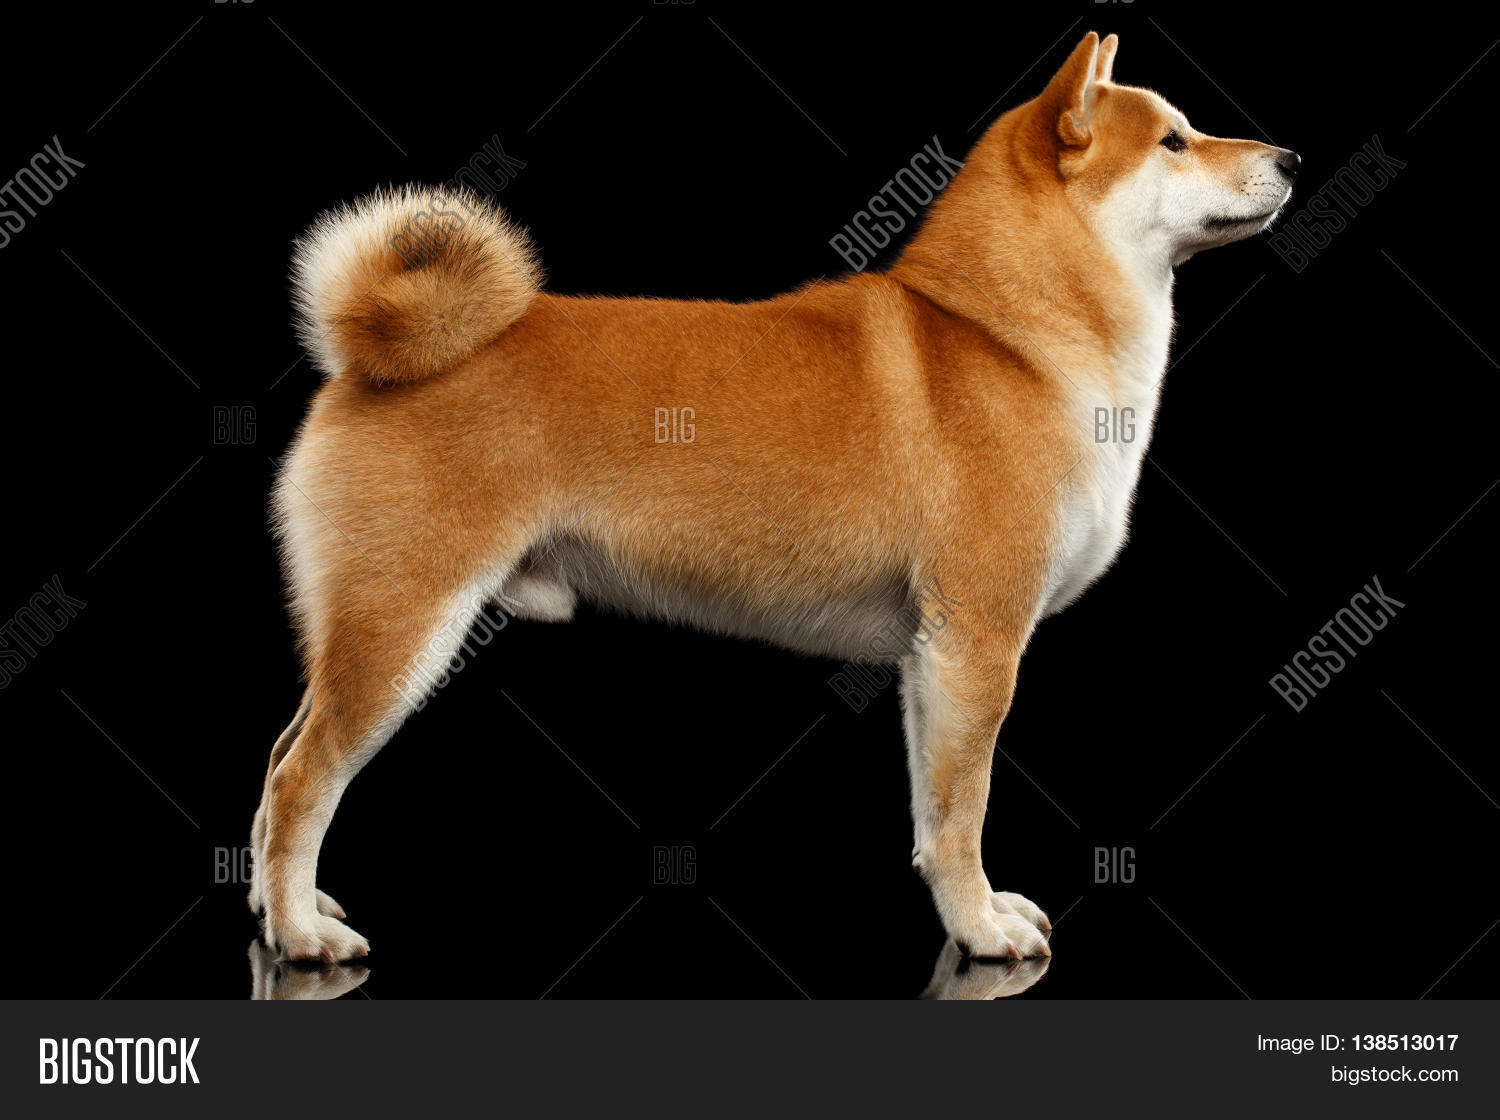 cute pedigreed red shiba inu breed dog standing on isolated black background side view stock. Black Bedroom Furniture Sets. Home Design Ideas